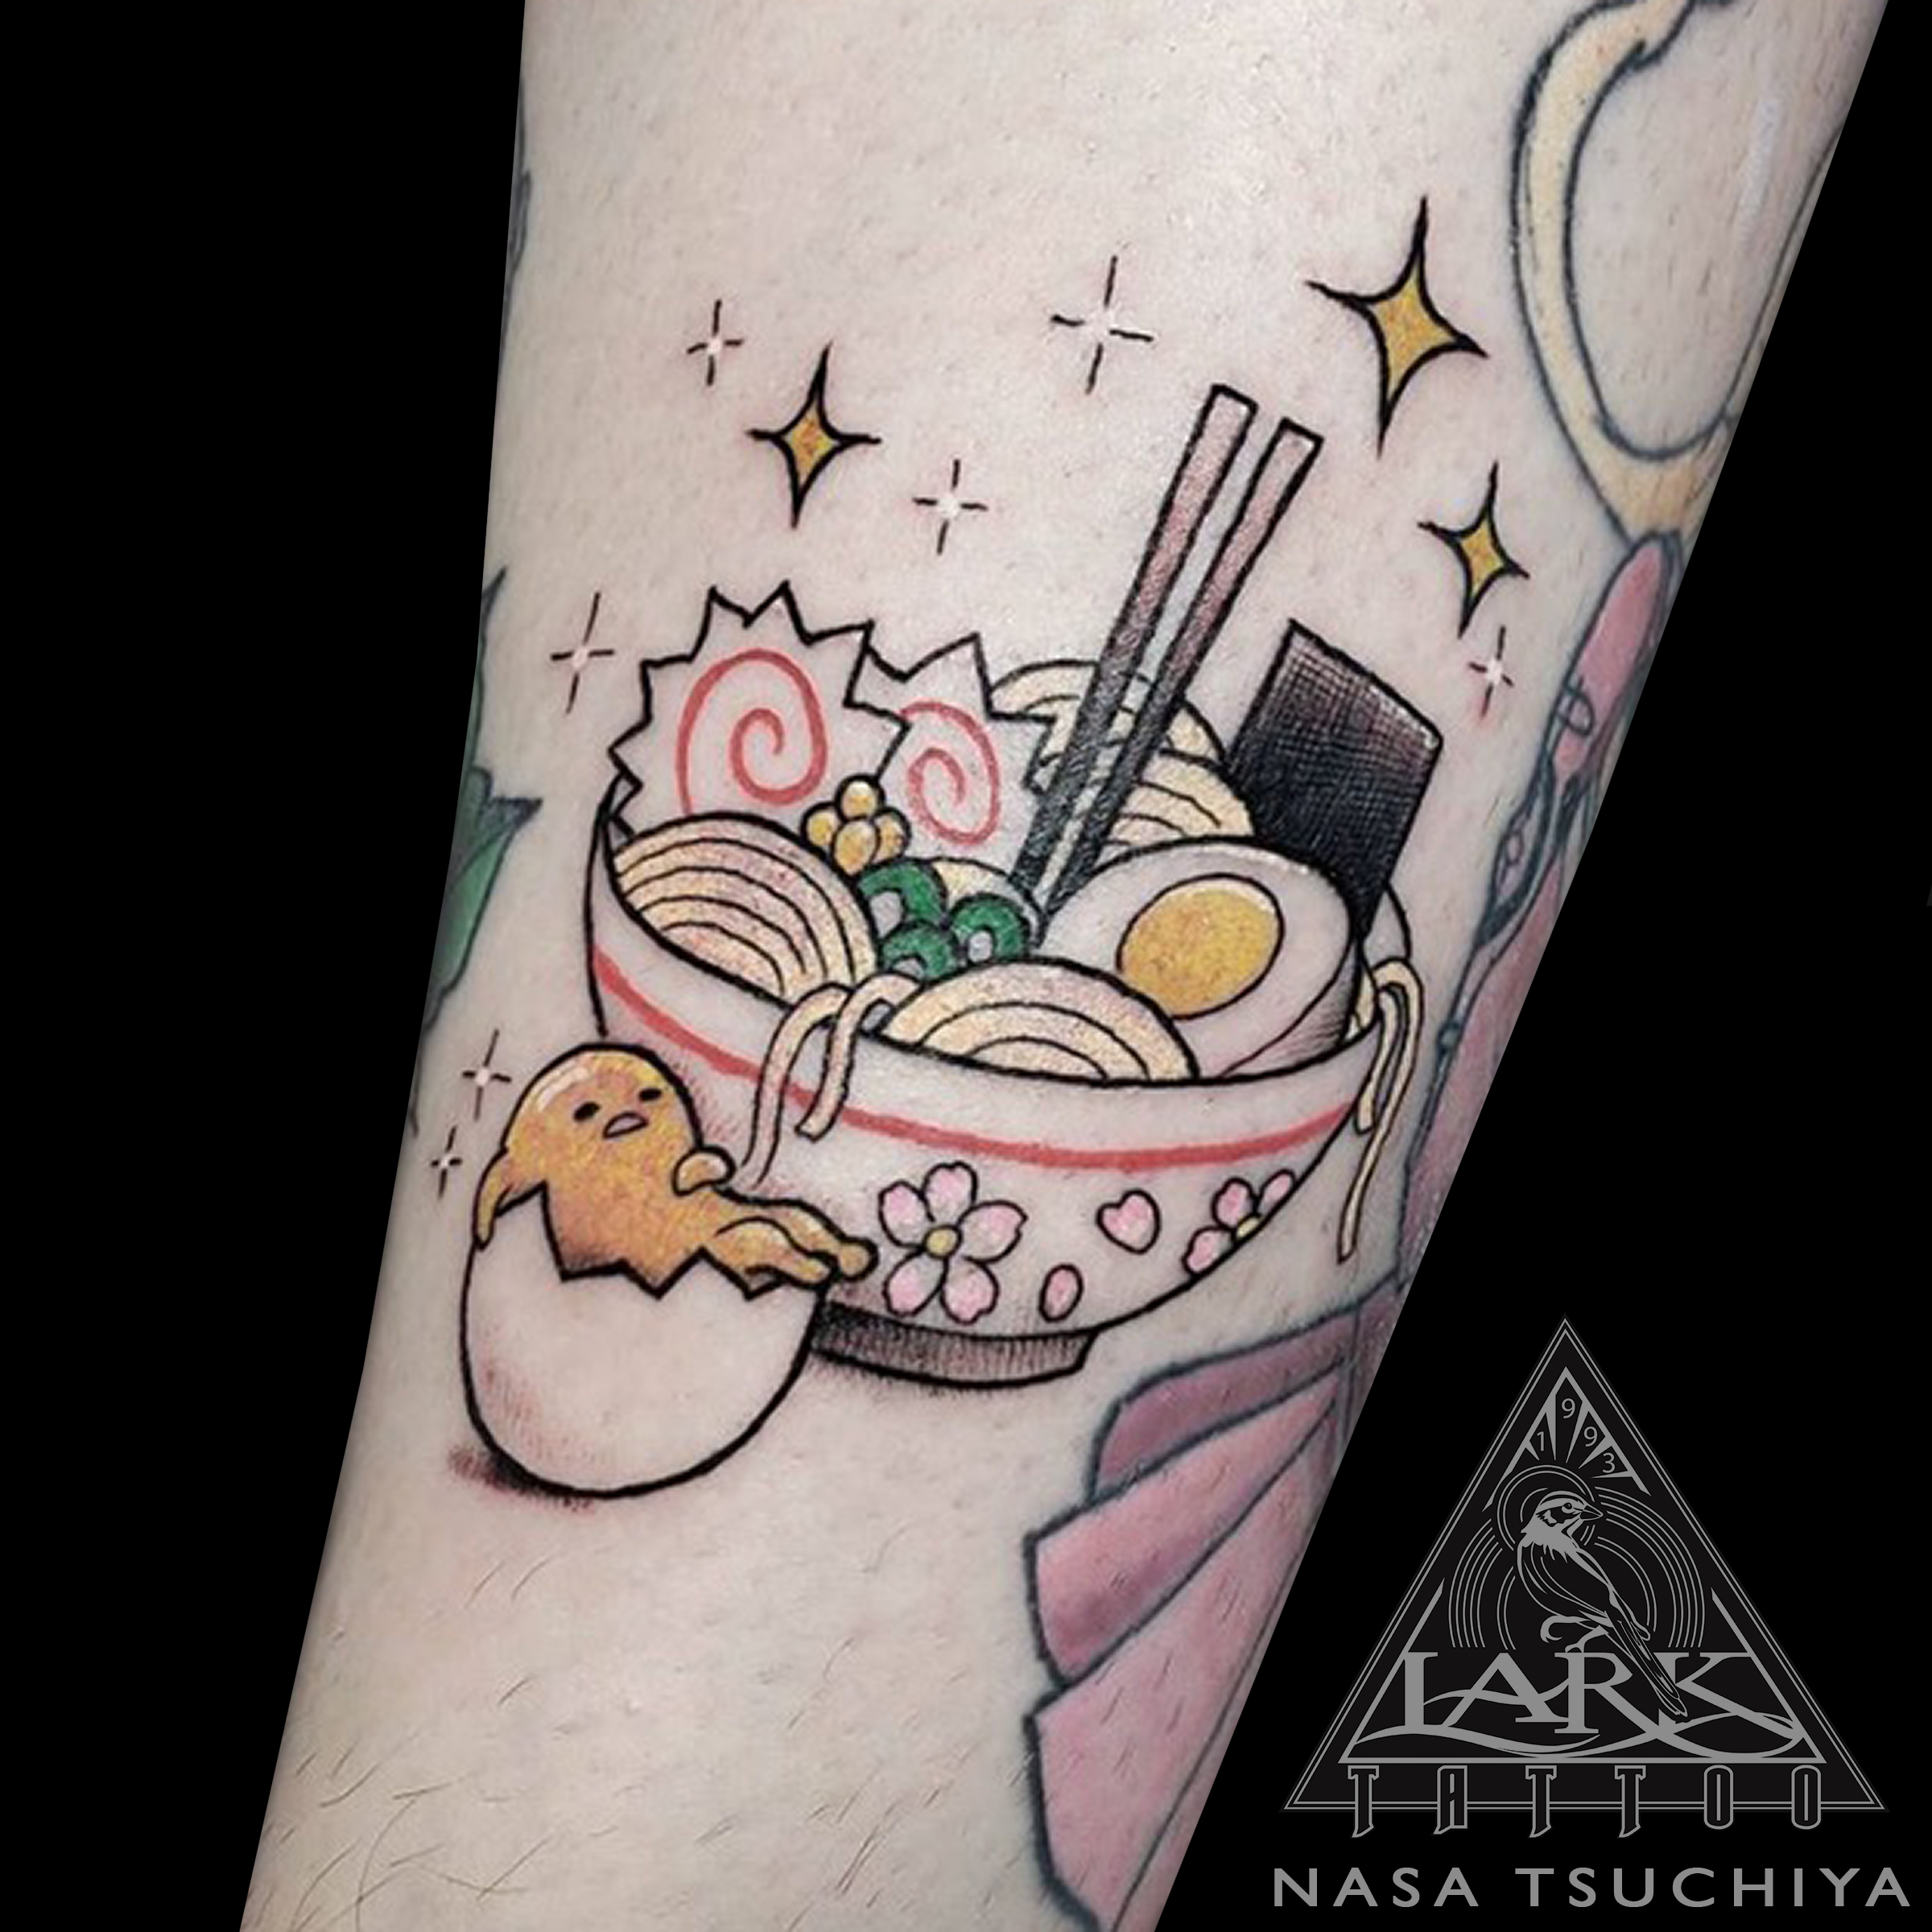 LarkTattoo, Tattoo, NasaTsuchiya, NasaTsuchiyaLarkTattoo, Tattoos, Gudetama, GudetamaTattoo, ぐでたま, ぐでたまTattoo, LazyEgg, LazyEggTattoo, NagashimaEmi, 永嶋瑛美, Kawaii, KawaiiTattoo, KimoKawaii, KimoKawaiiTattoo, CuteTattoo, ColorTattoo, JapaneseTattoo, Ramen, RamenTattoo, RamenNoodles, RamenNoodlesTattoo, CartoonTattoo, IllustrationTattoo, TattooArtist , LongIslandTattooArtist, LongIslandTattooer, LongIslandTattoo, Cute, Tattooer, Tattoist, TattooOfTheDay, Tat, Tats, Tatts, Tatted, Inked, Ink, TattooInk, AmazingInk, AmazingTattoo, BodyArt, LarkTattooWestbury, Westbury, LongIsland, NY, NewYork, USA, Art, Tattedup, InkedUp, LarkTattoos